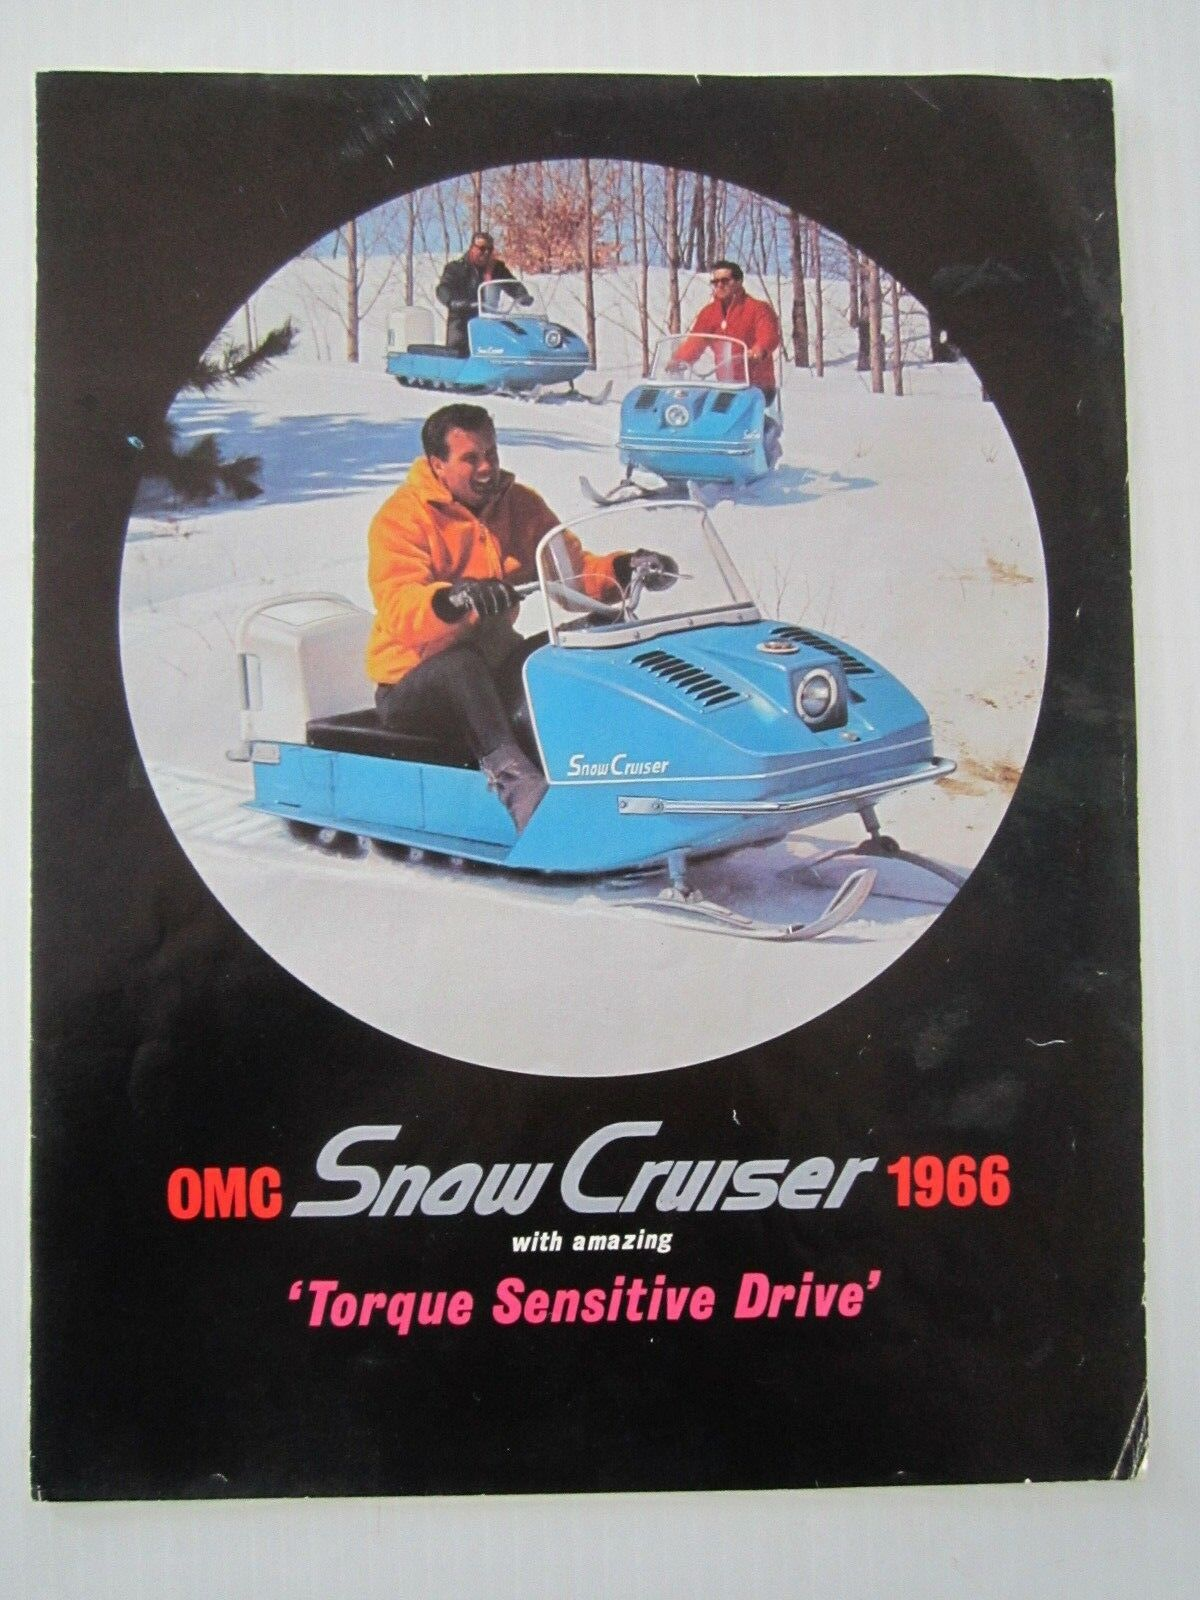 Vintage 1966 Snow Cruiser Snowmobile adgreenising sales brochure Ski-Doo Polaris